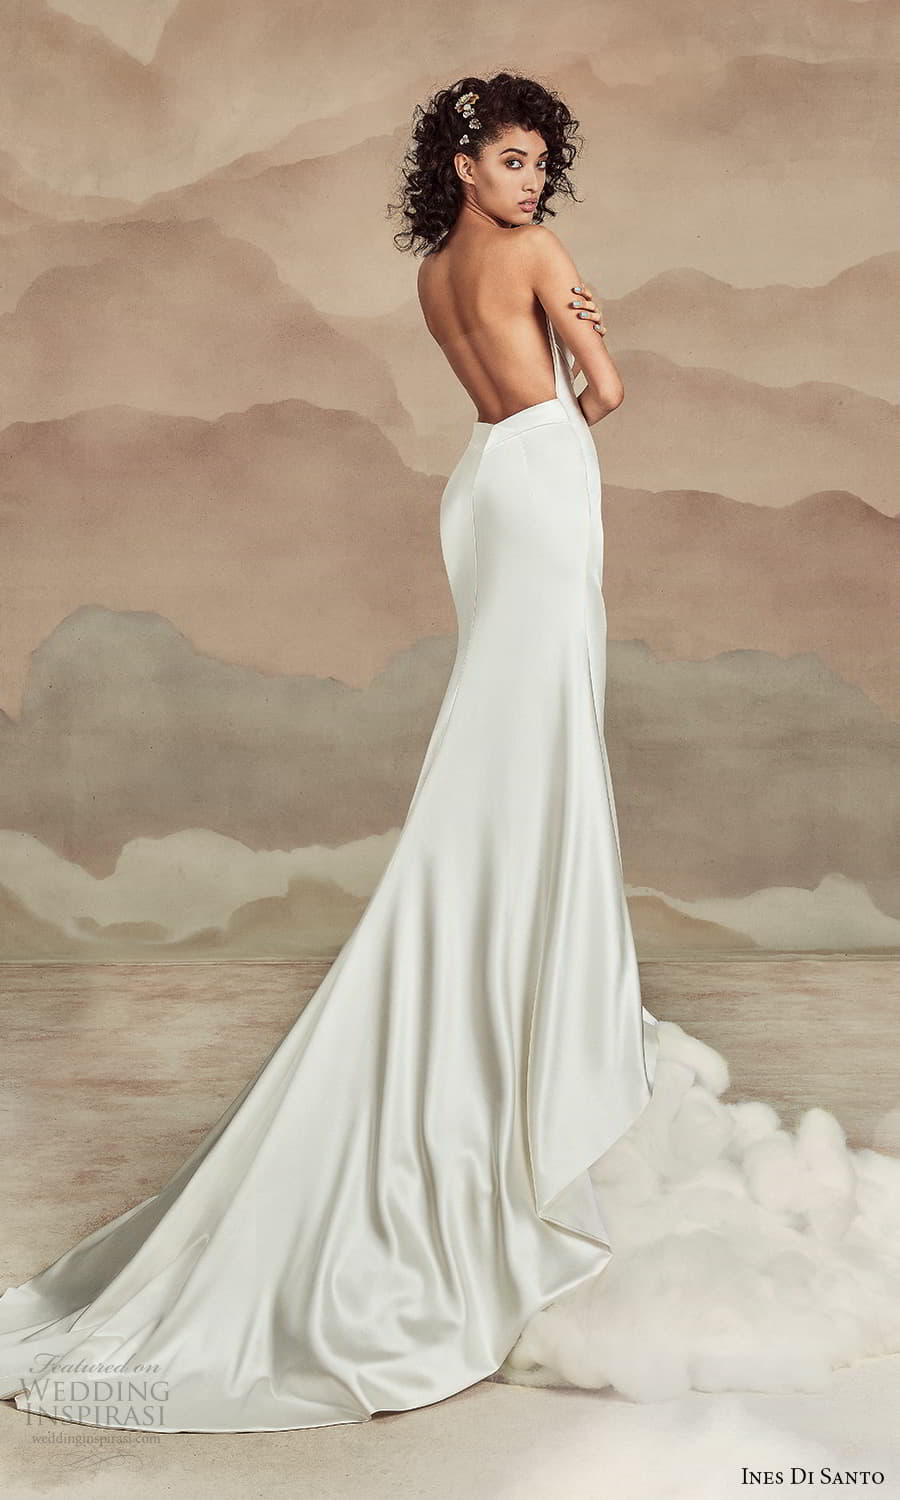 ines di santo spring 2022 bridal strapless straight across neckline clean minimalist sheath wedding dress (8) bv